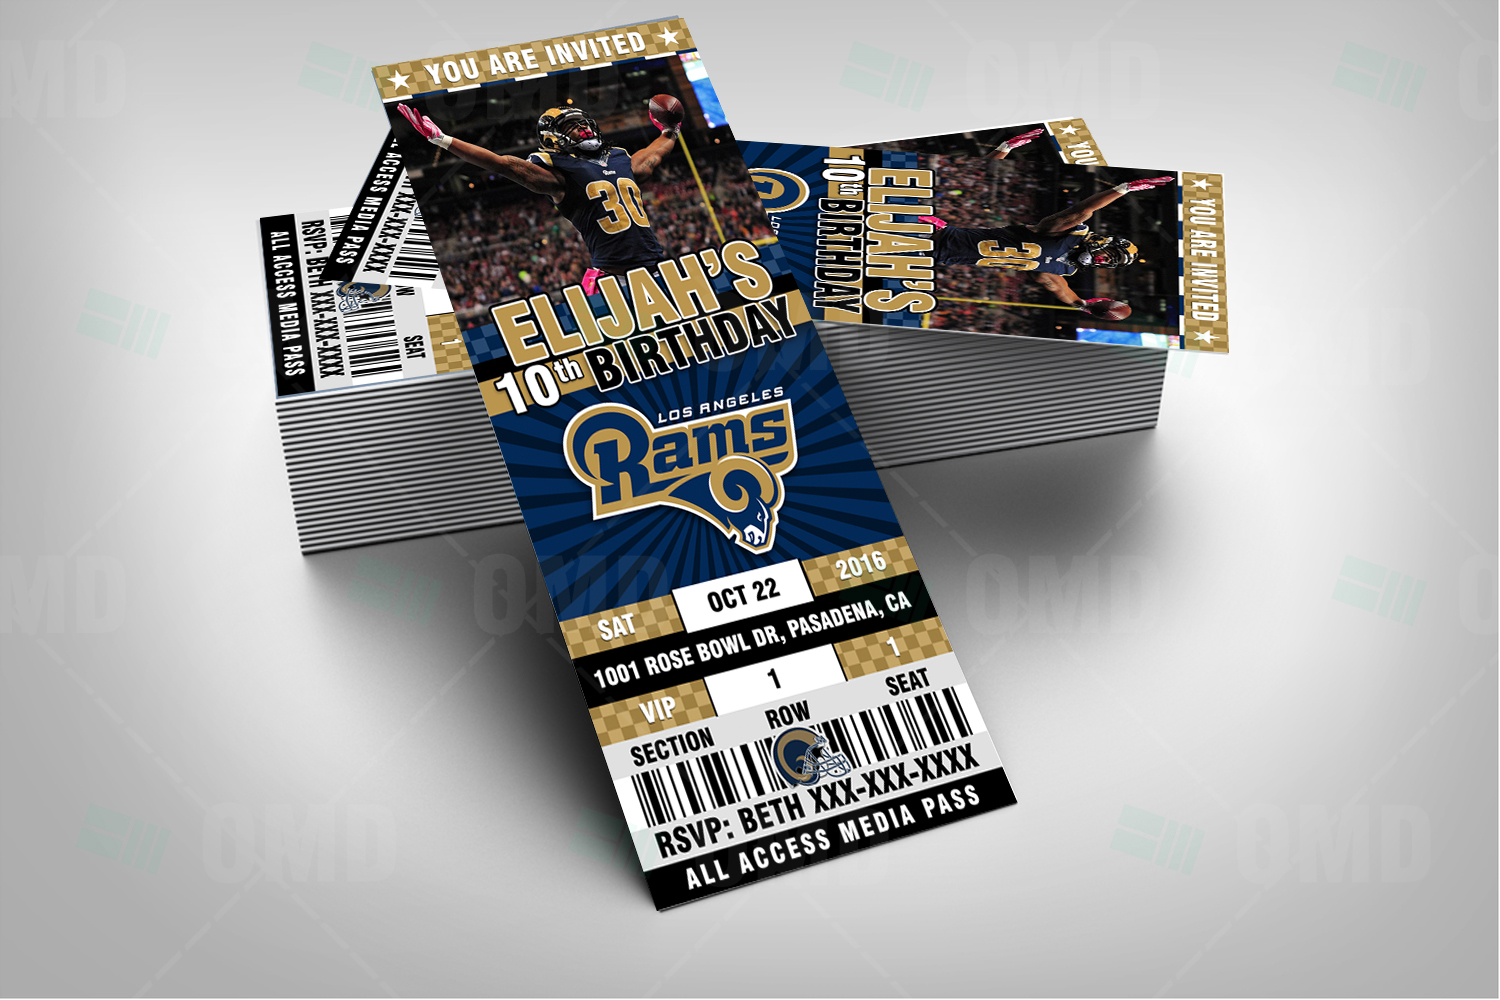 los angeles rams invite 1 product 2